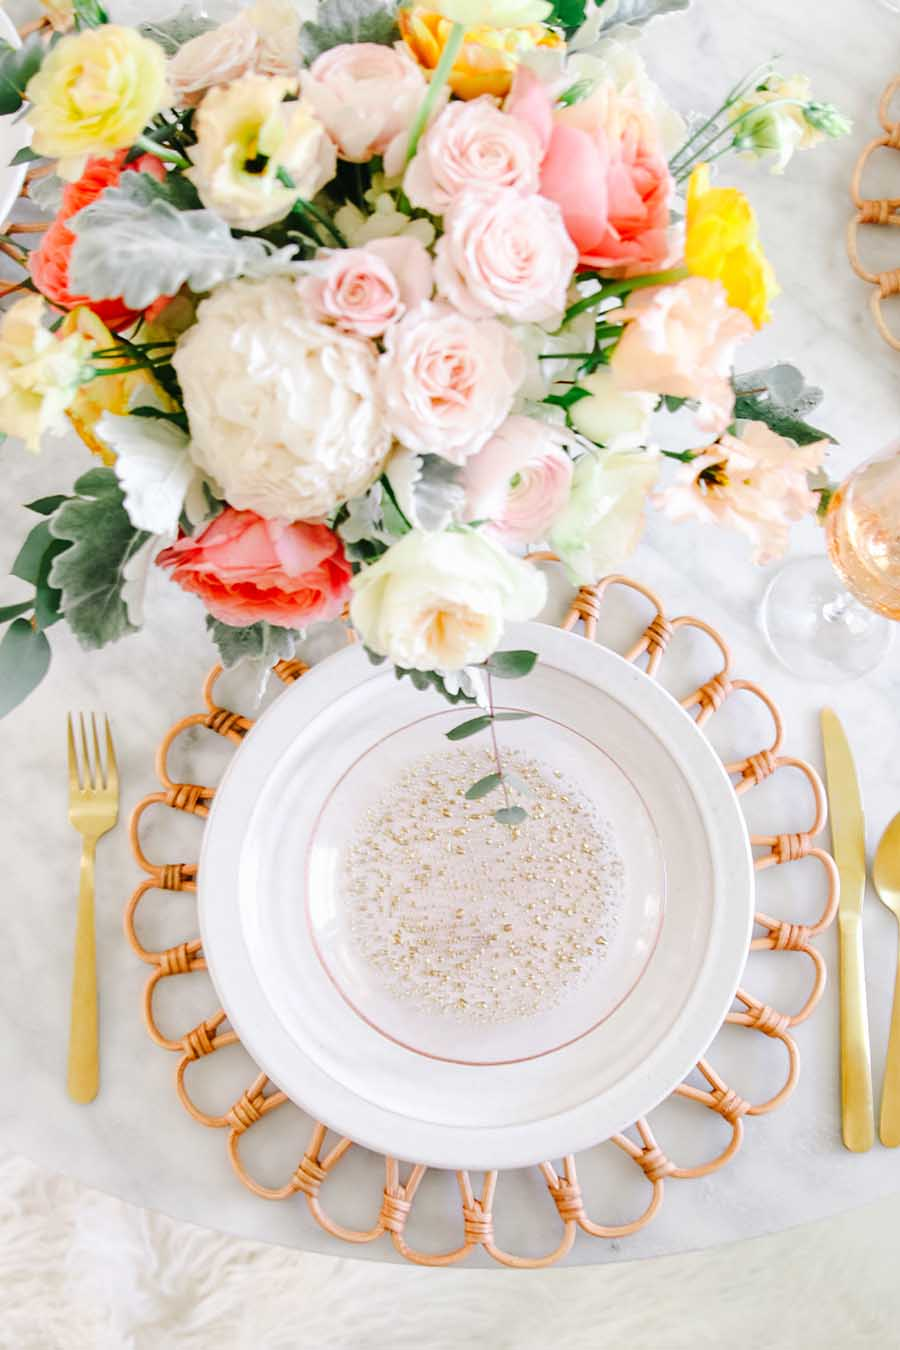 mother's day table setting idea